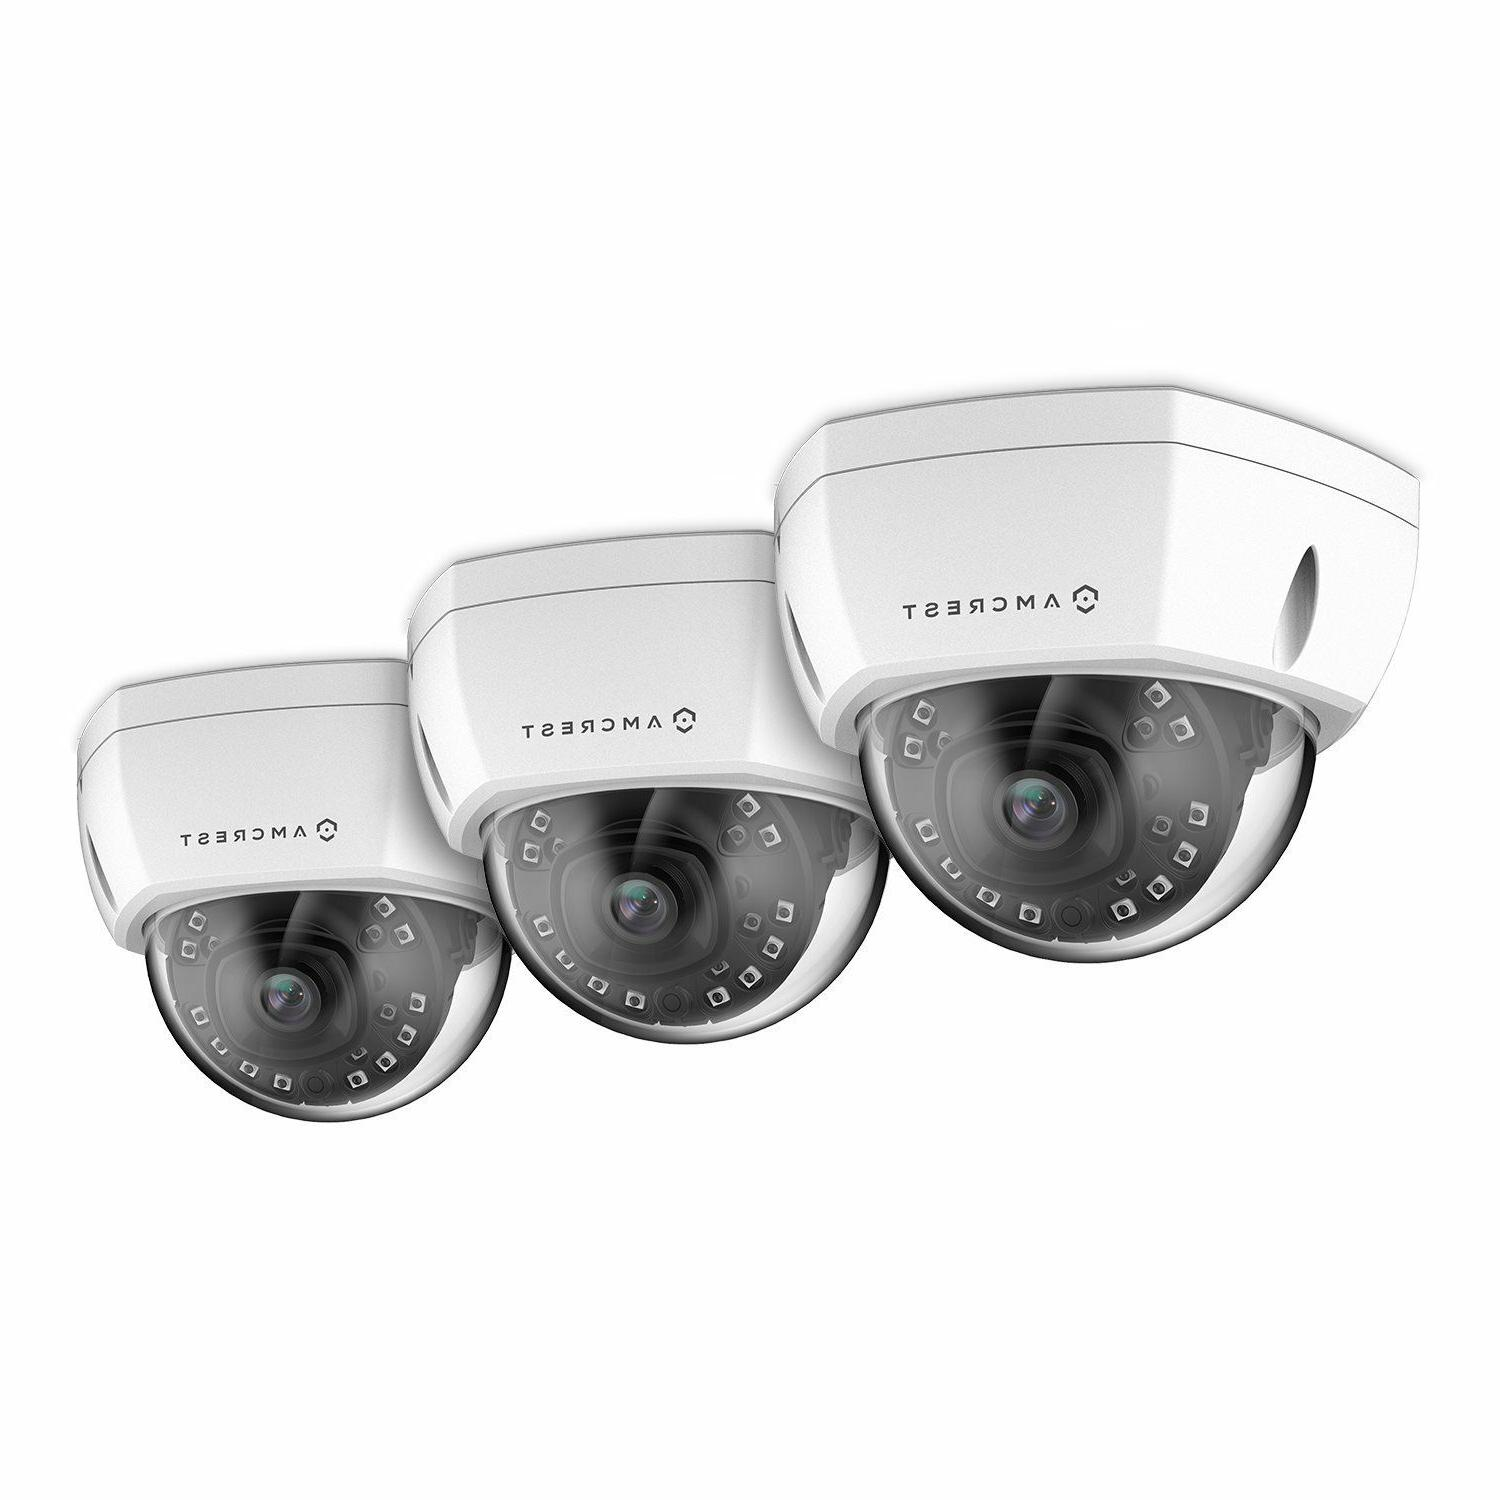 Amcrest UltraHD 4K Security POE IP 3840x2160, NightVision, Lens, Vandal